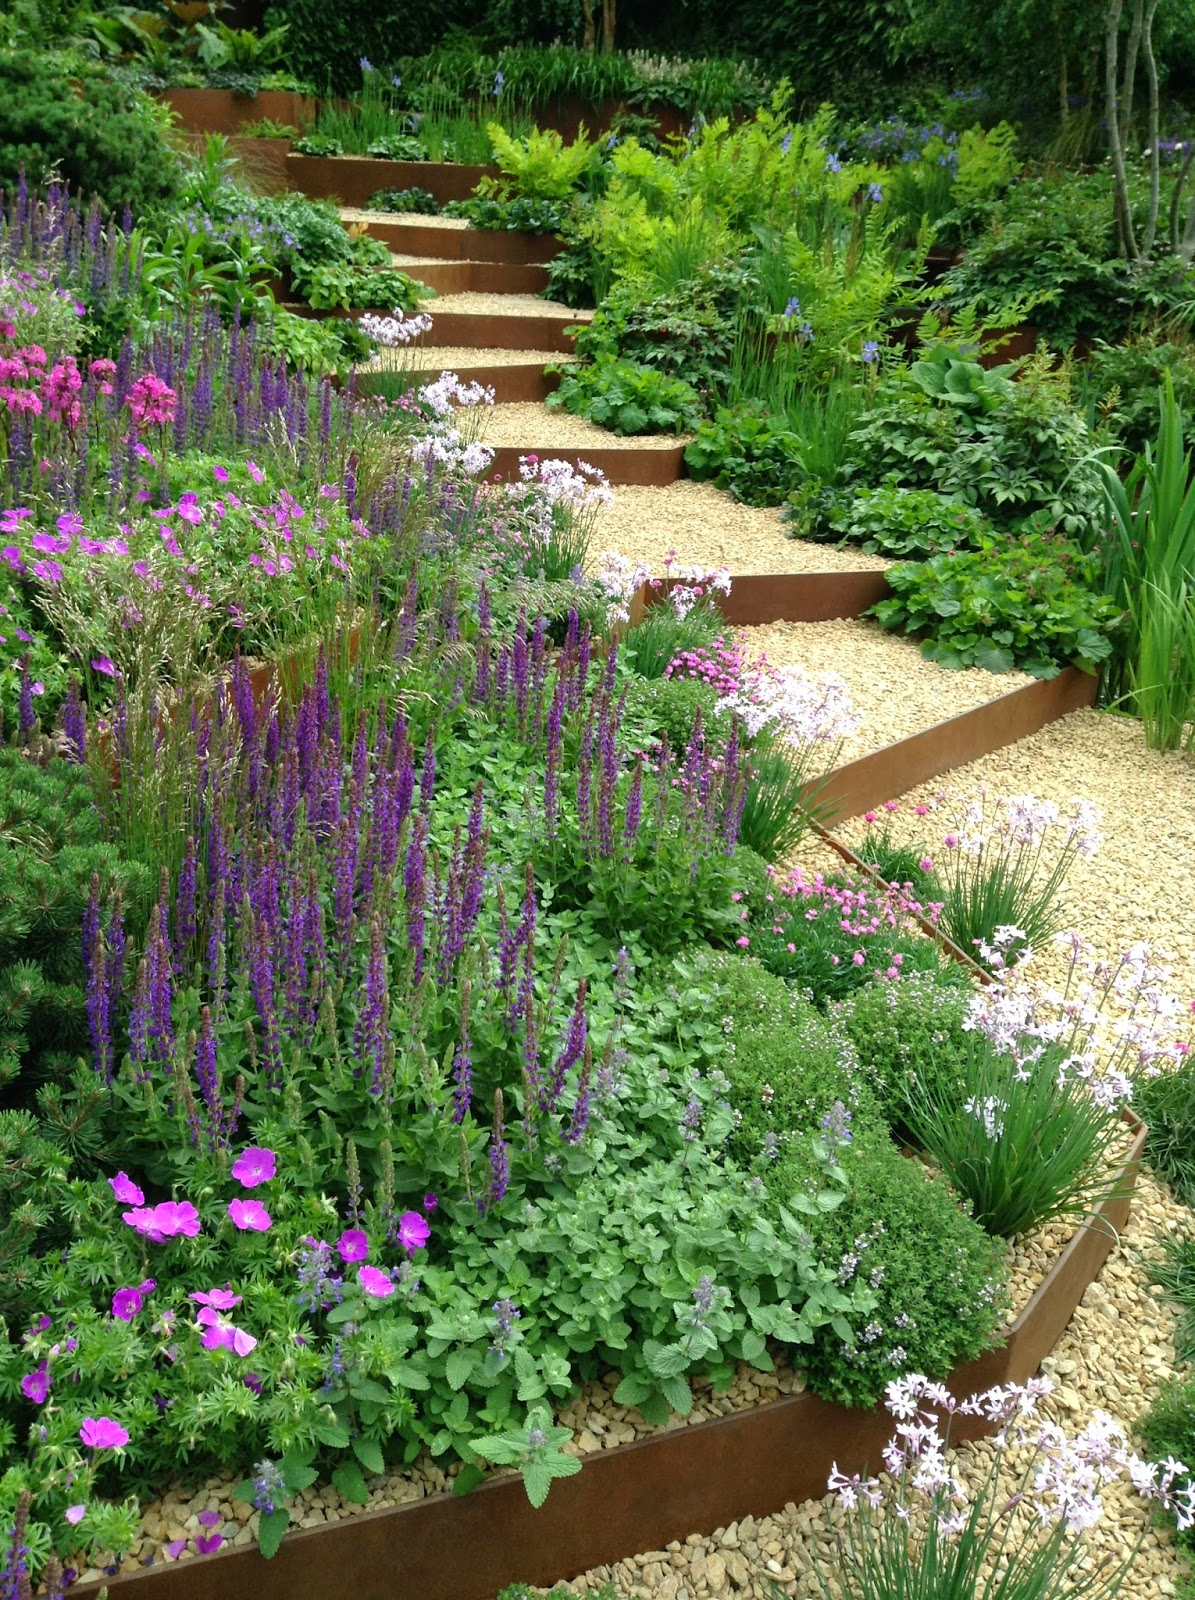 RHS Chelsea Flower Show - A Garden for First Touch at St. George by Patrick Collins - Nepeta, Salvia, Geranium, Thulbaghia, Gravel, Corten Steel - Silver Gilt - Photo by Noemi Mercurelli